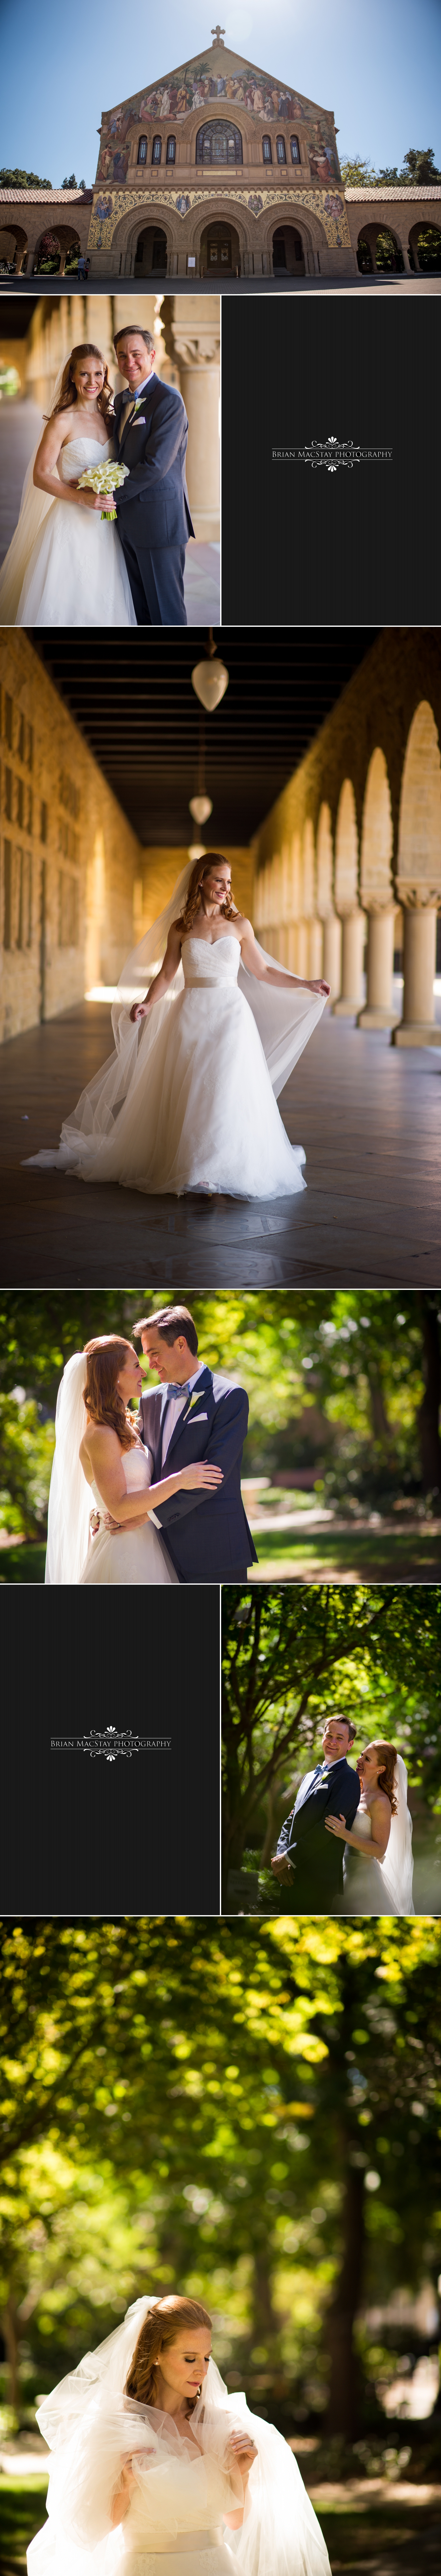 Wedding At Stanford Memorial Church And The Stanford Park